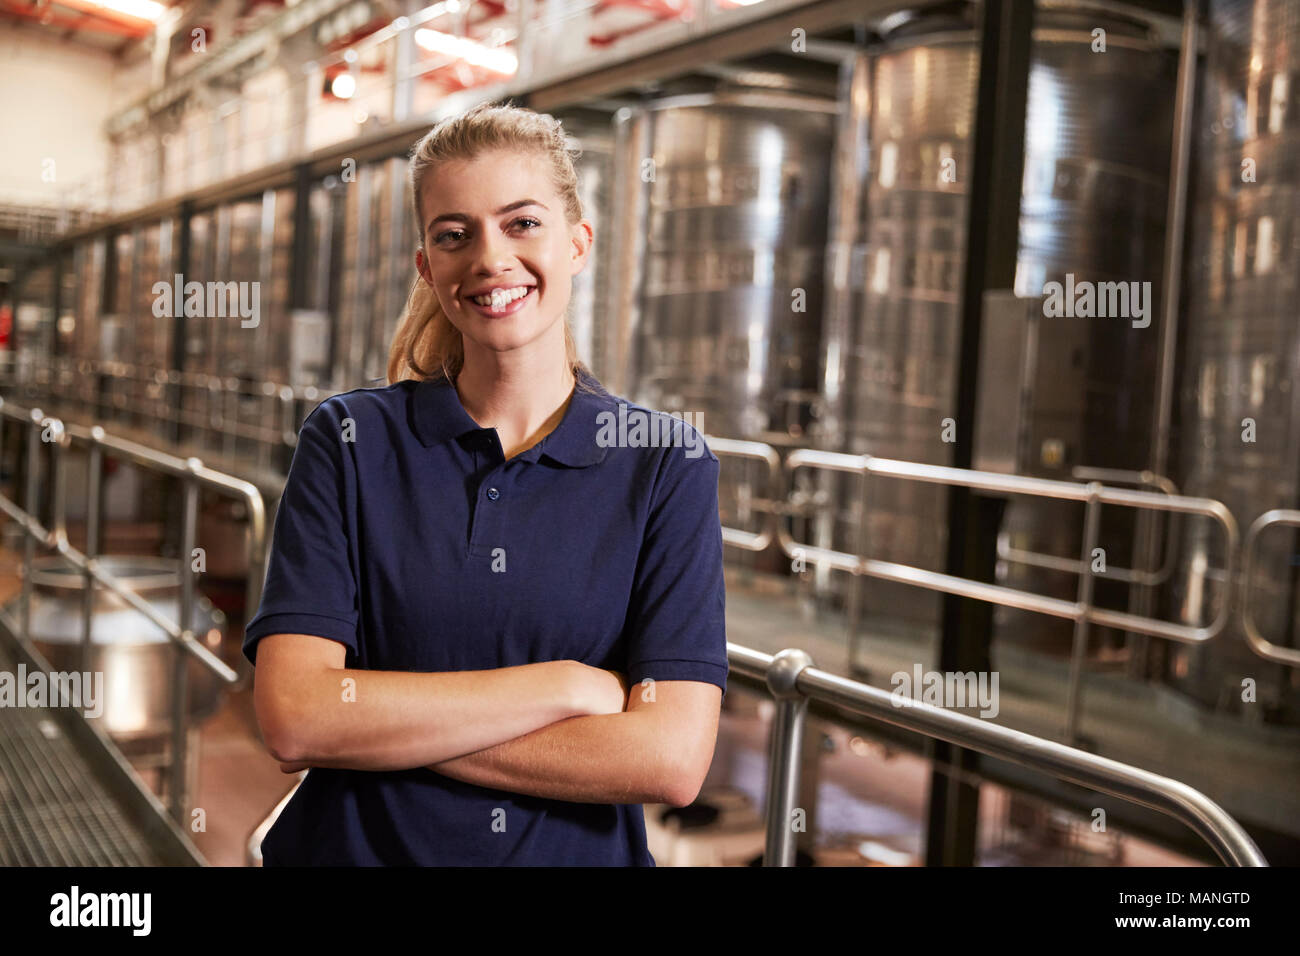 Portrait of a young white woman working at a wine factory Stock Photo